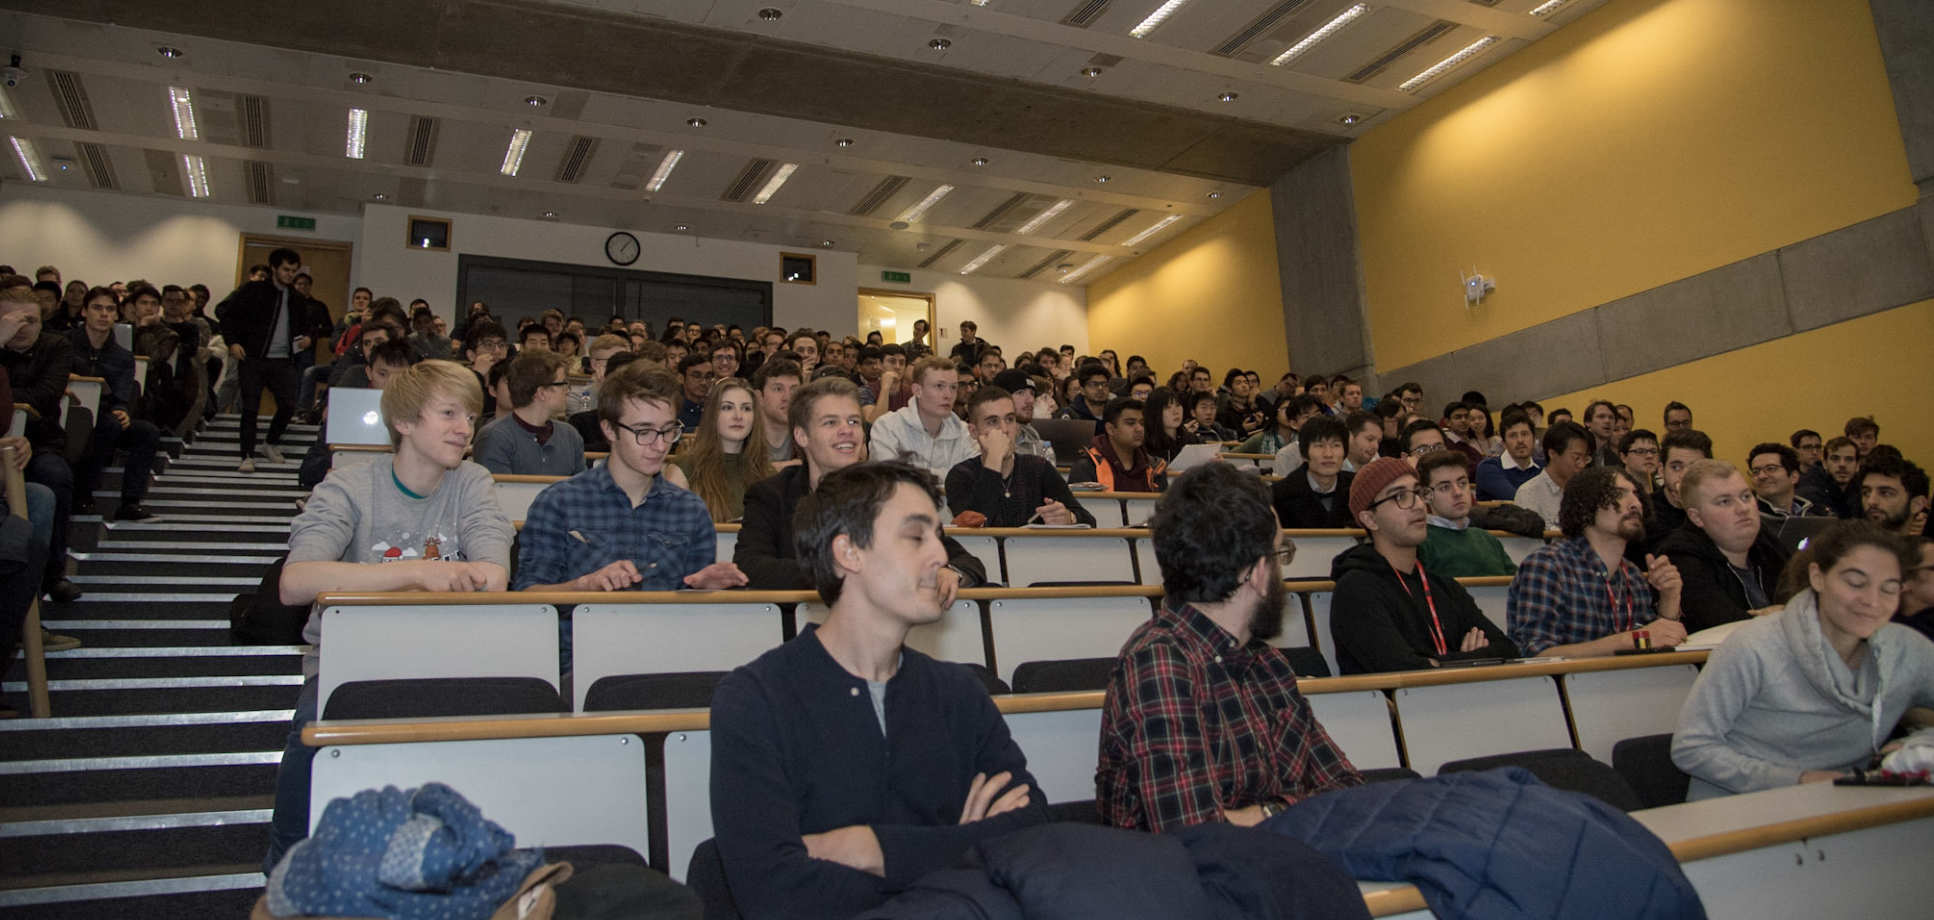 Around 300 Undergraduate and Postgraduate students from diverse backgrounds attended the launch event